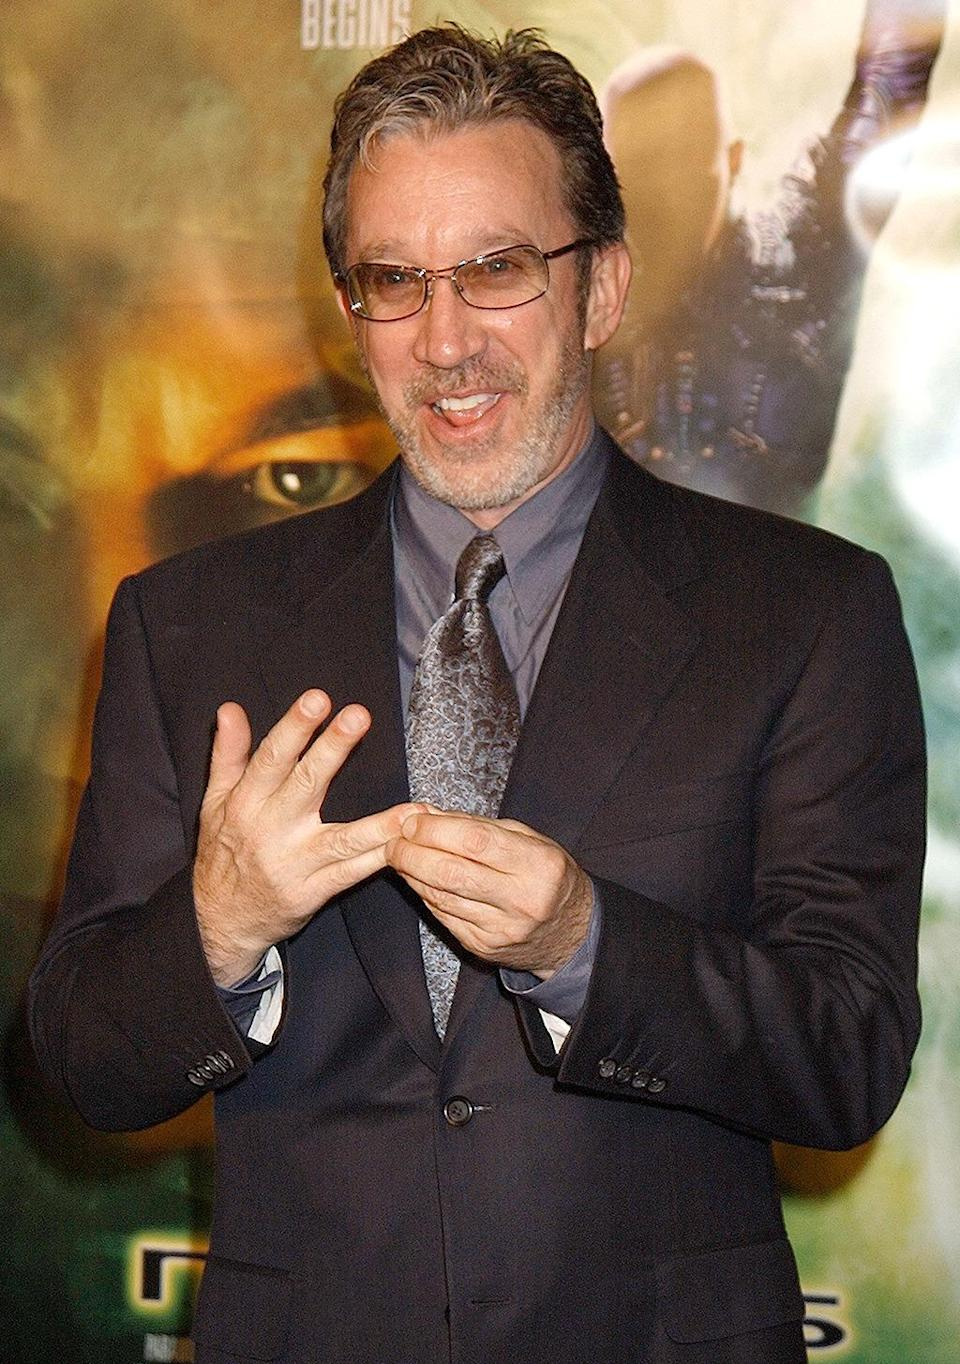 <p><i>Galaxy Quest</i> star Tim Allen attends the premiere as a guest. <i>(Photo: Gregg DeGuire/WireImage)</i></p>